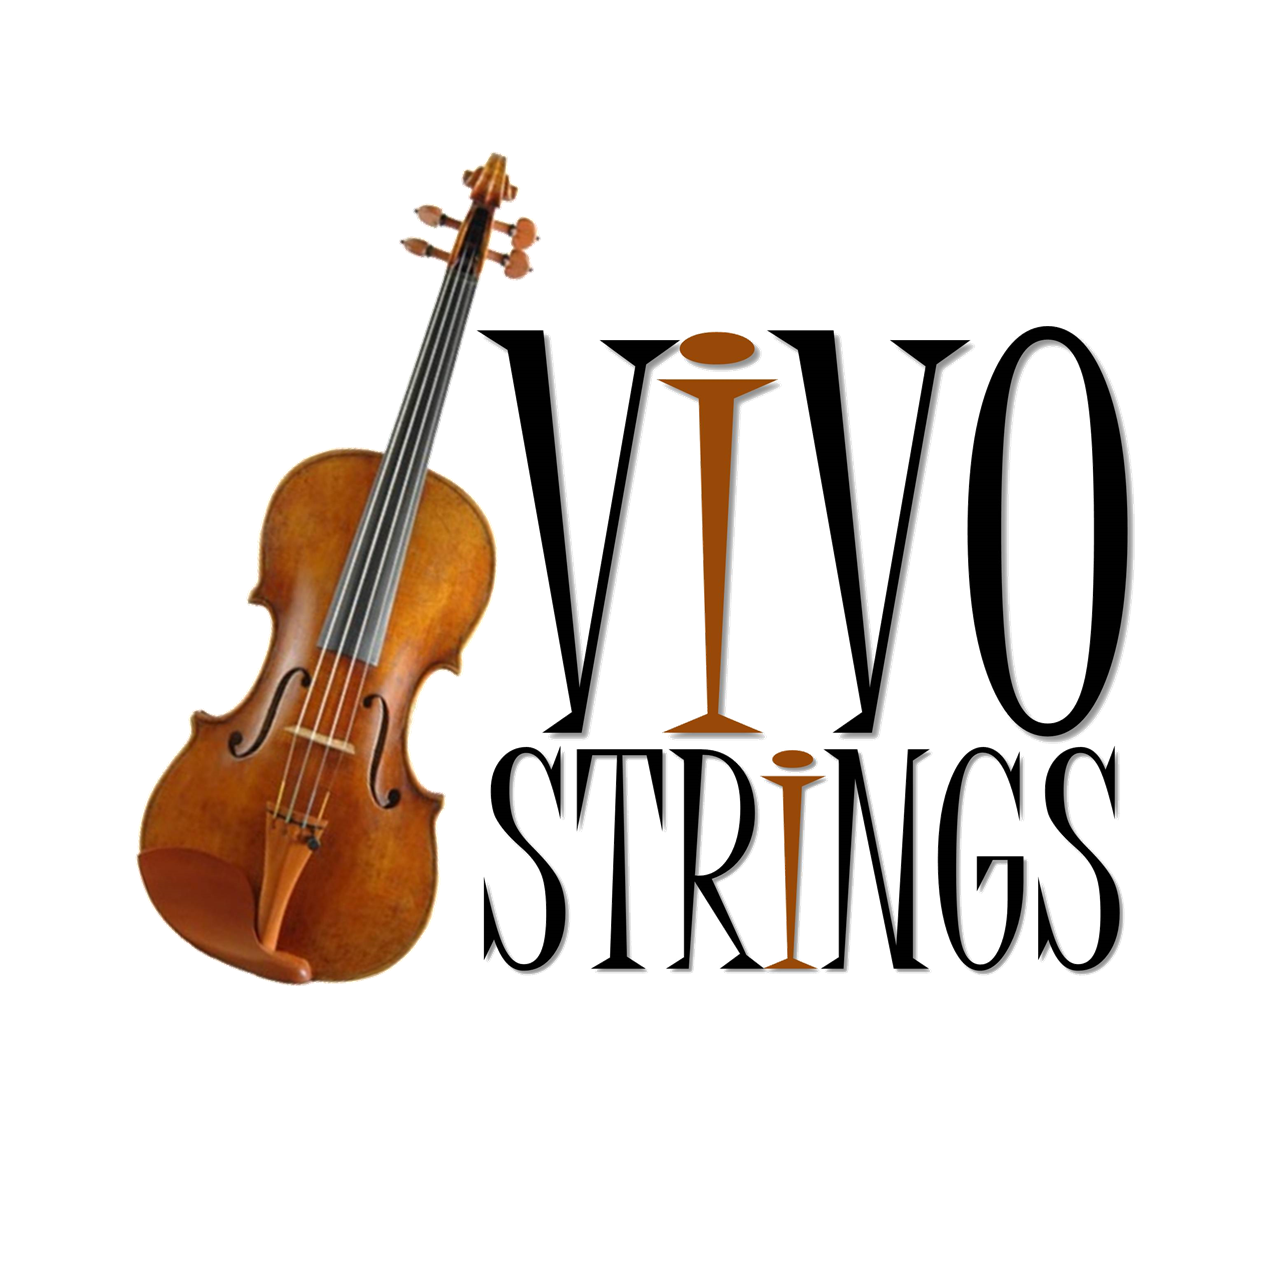 Vivo Strings